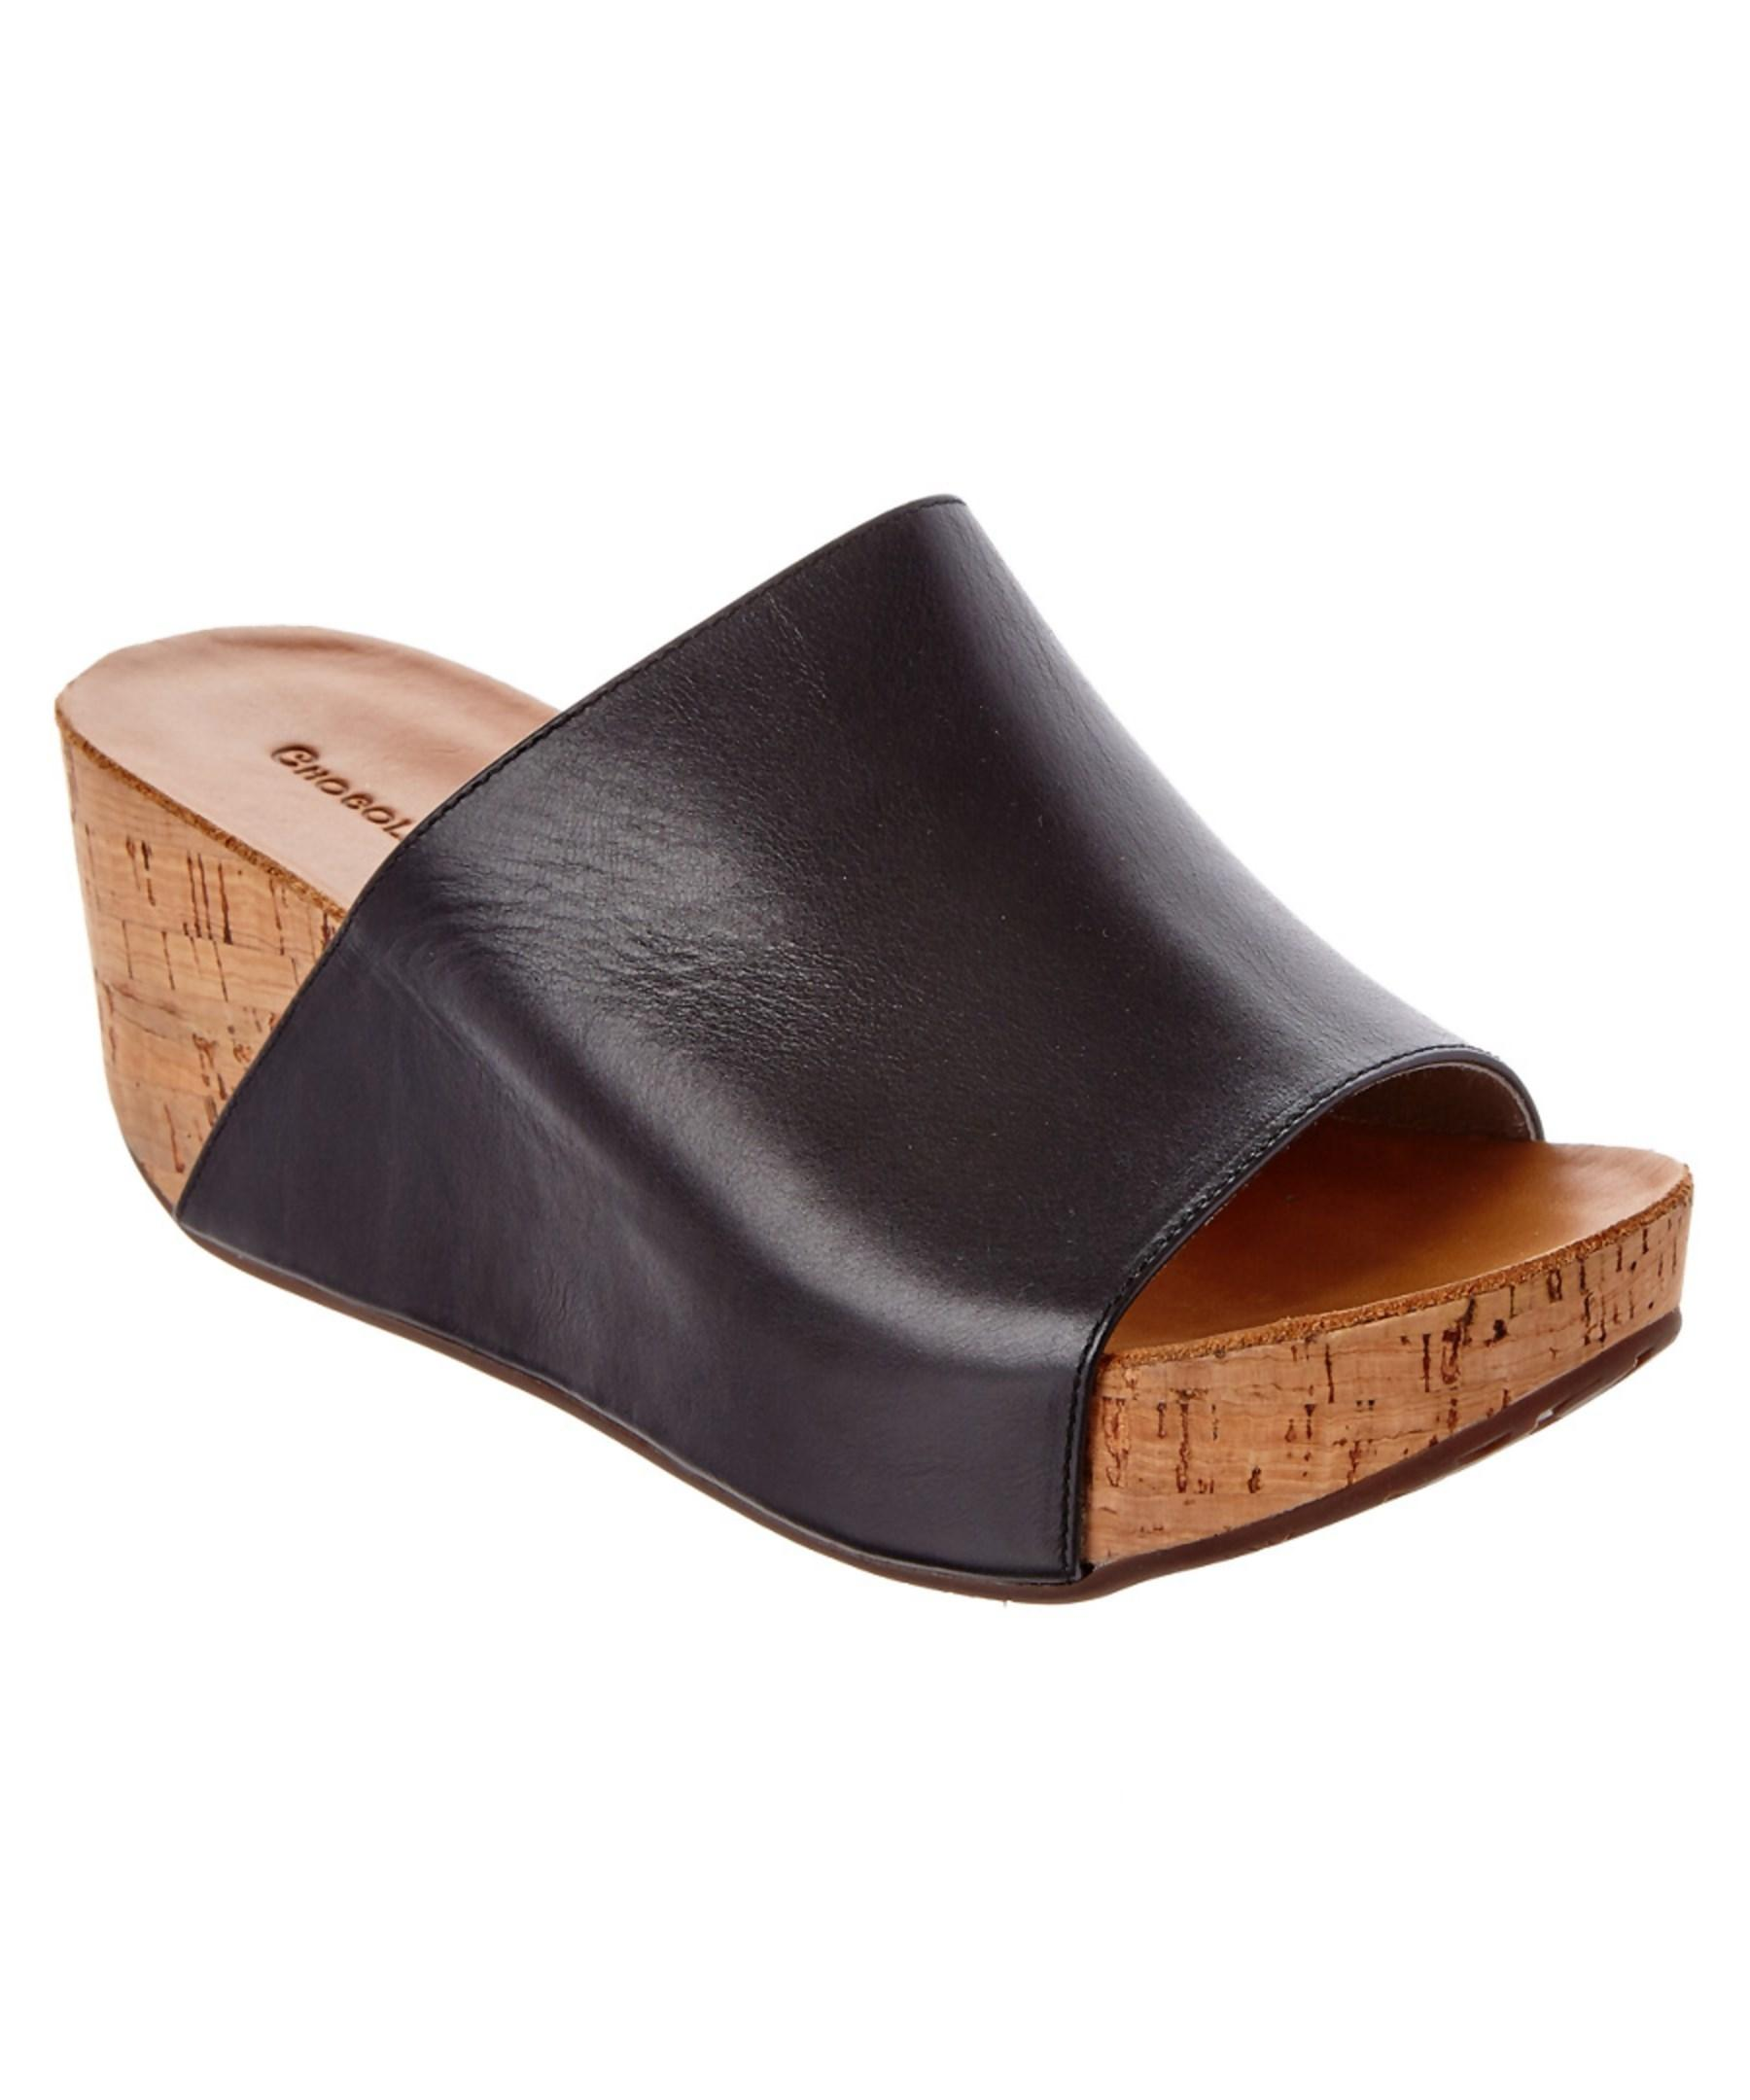 a1ccaa8bf9a Lyst - Chocolat Blu Manny Leather Wedge Sandal in Black